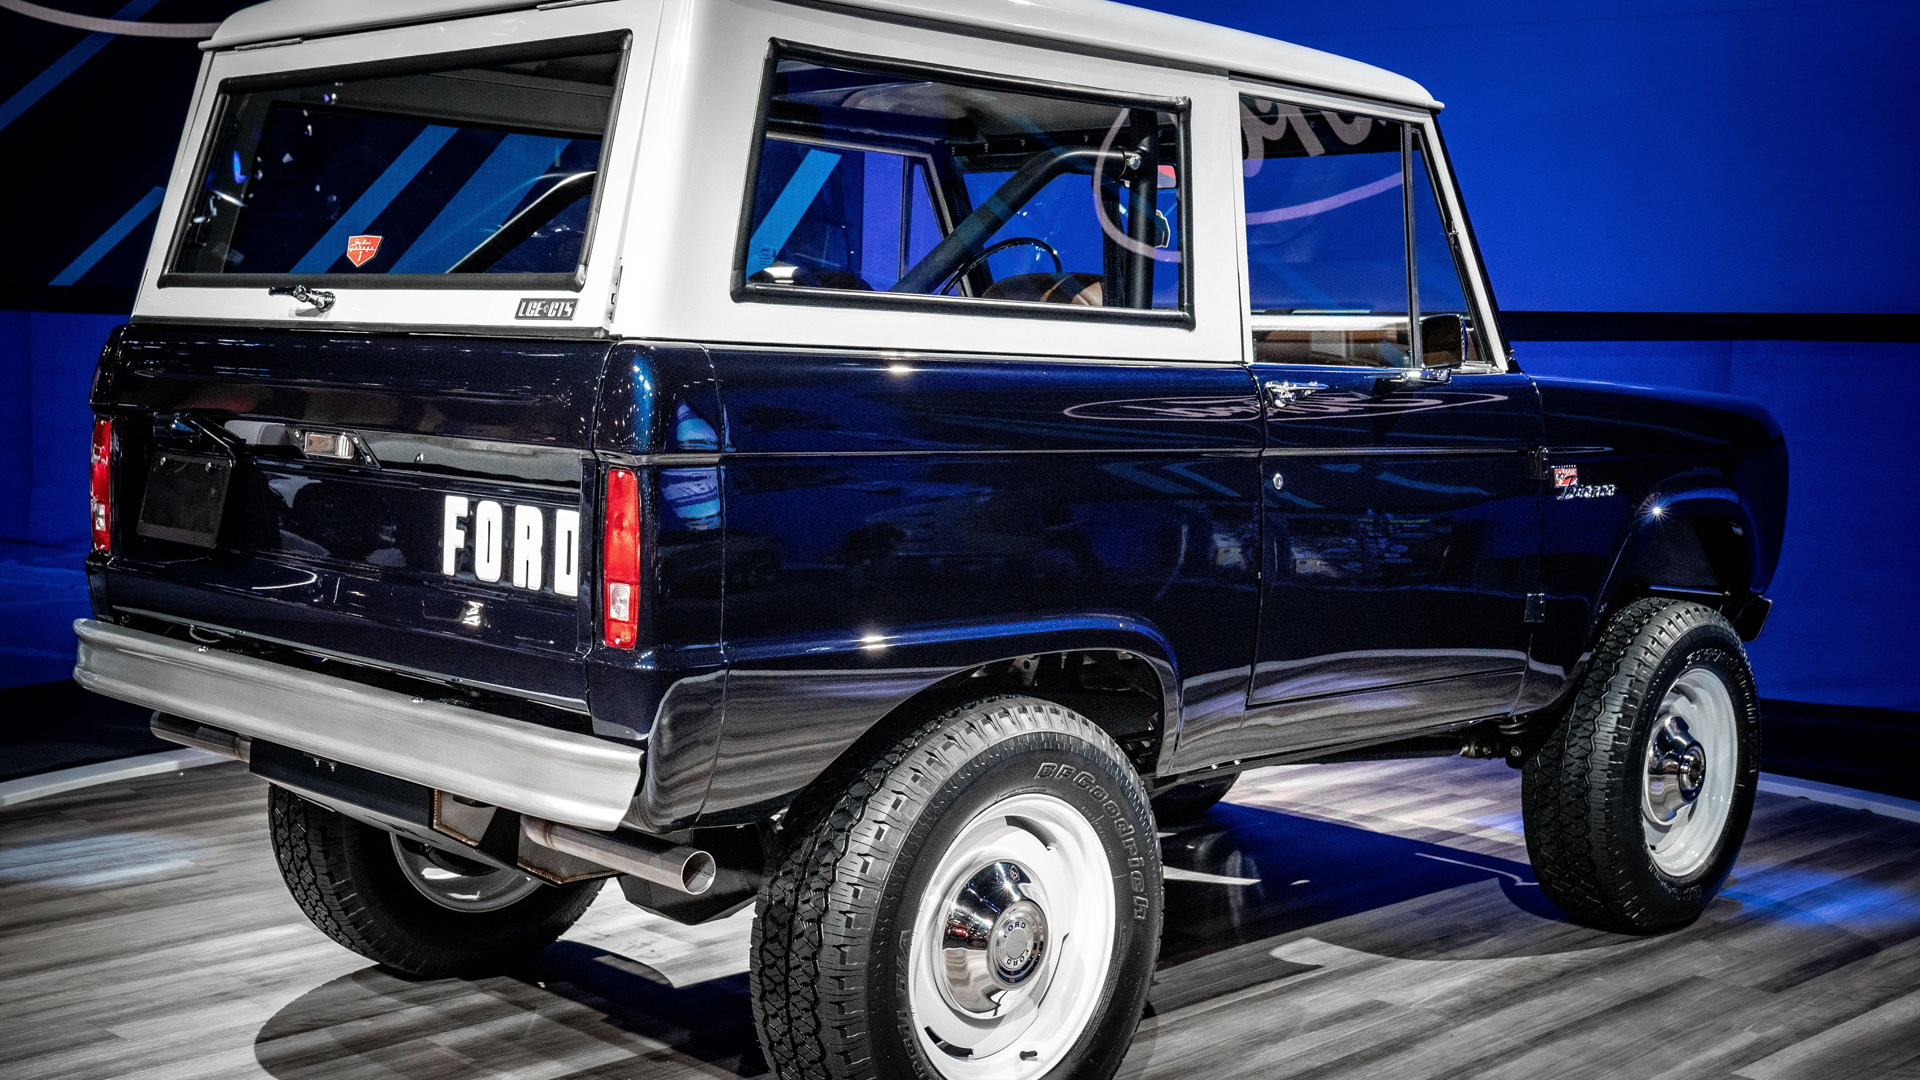 Jay Leno's 1968 Ford Bronco restored by LGE-CTS Motorsports